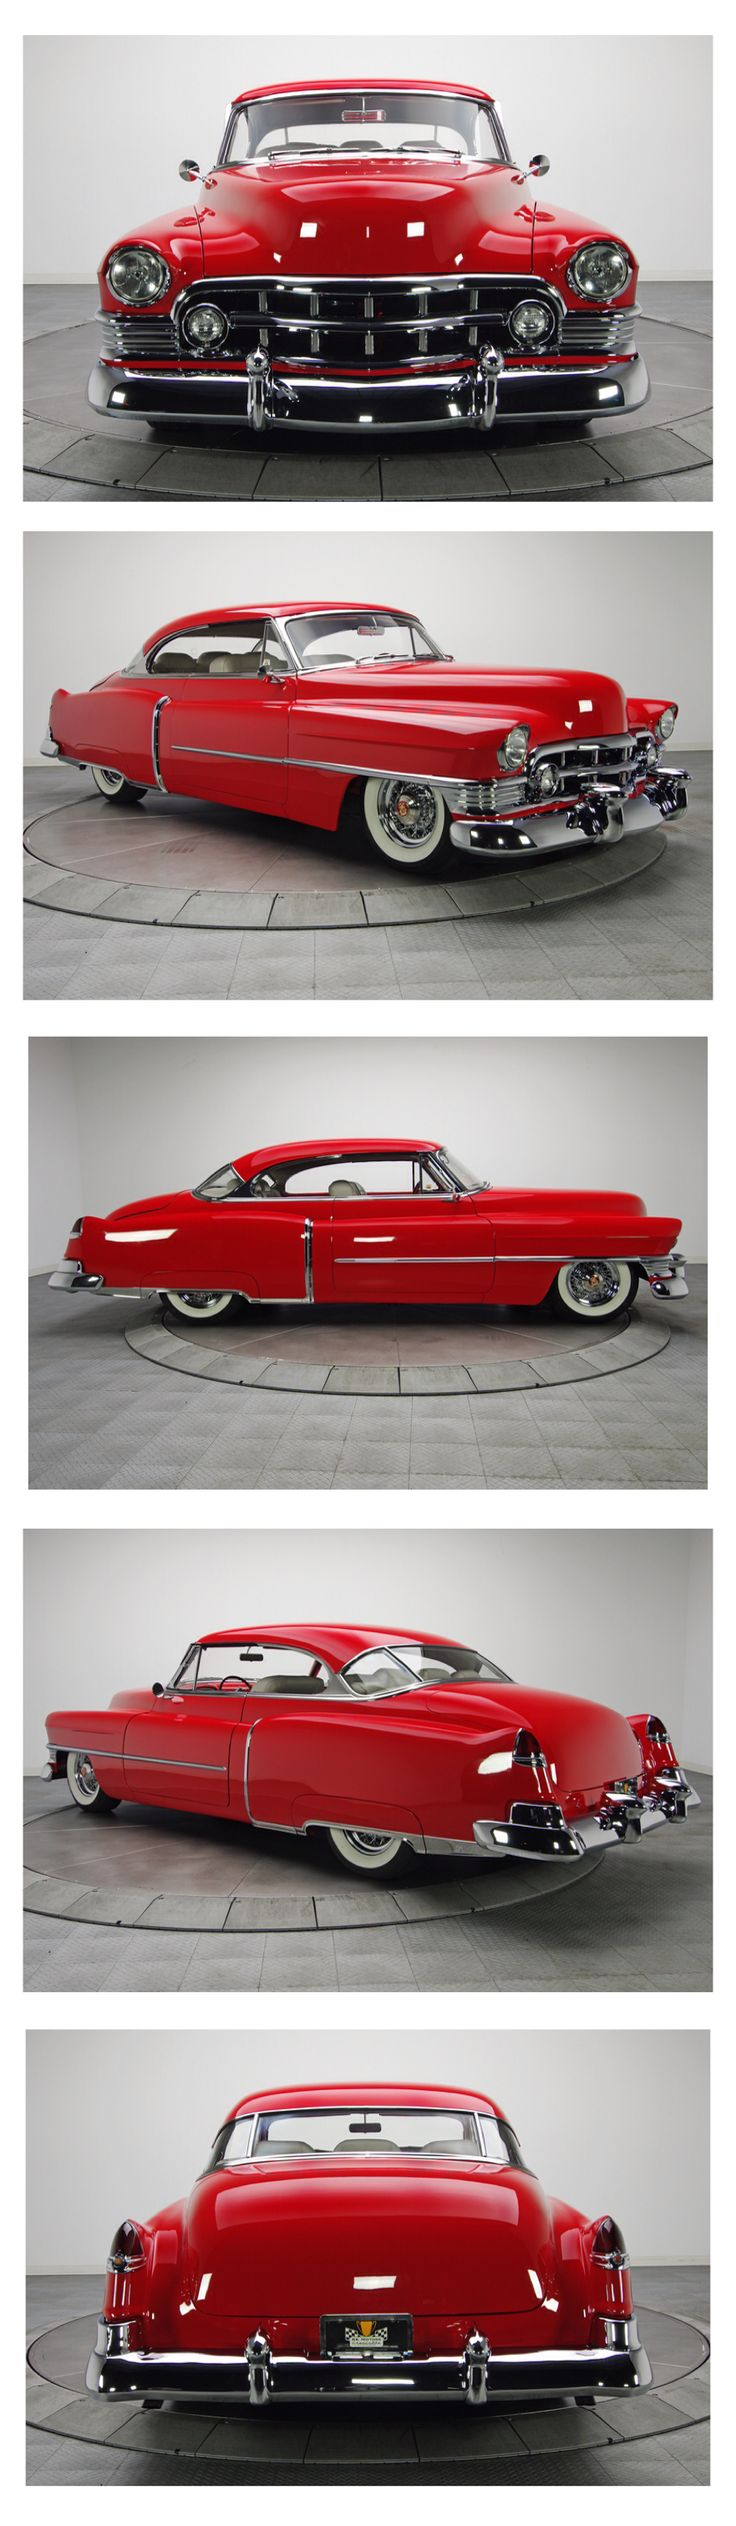 1950 Cadillac Series 61...Brought to you by #House of Insurance #EugeneOregon